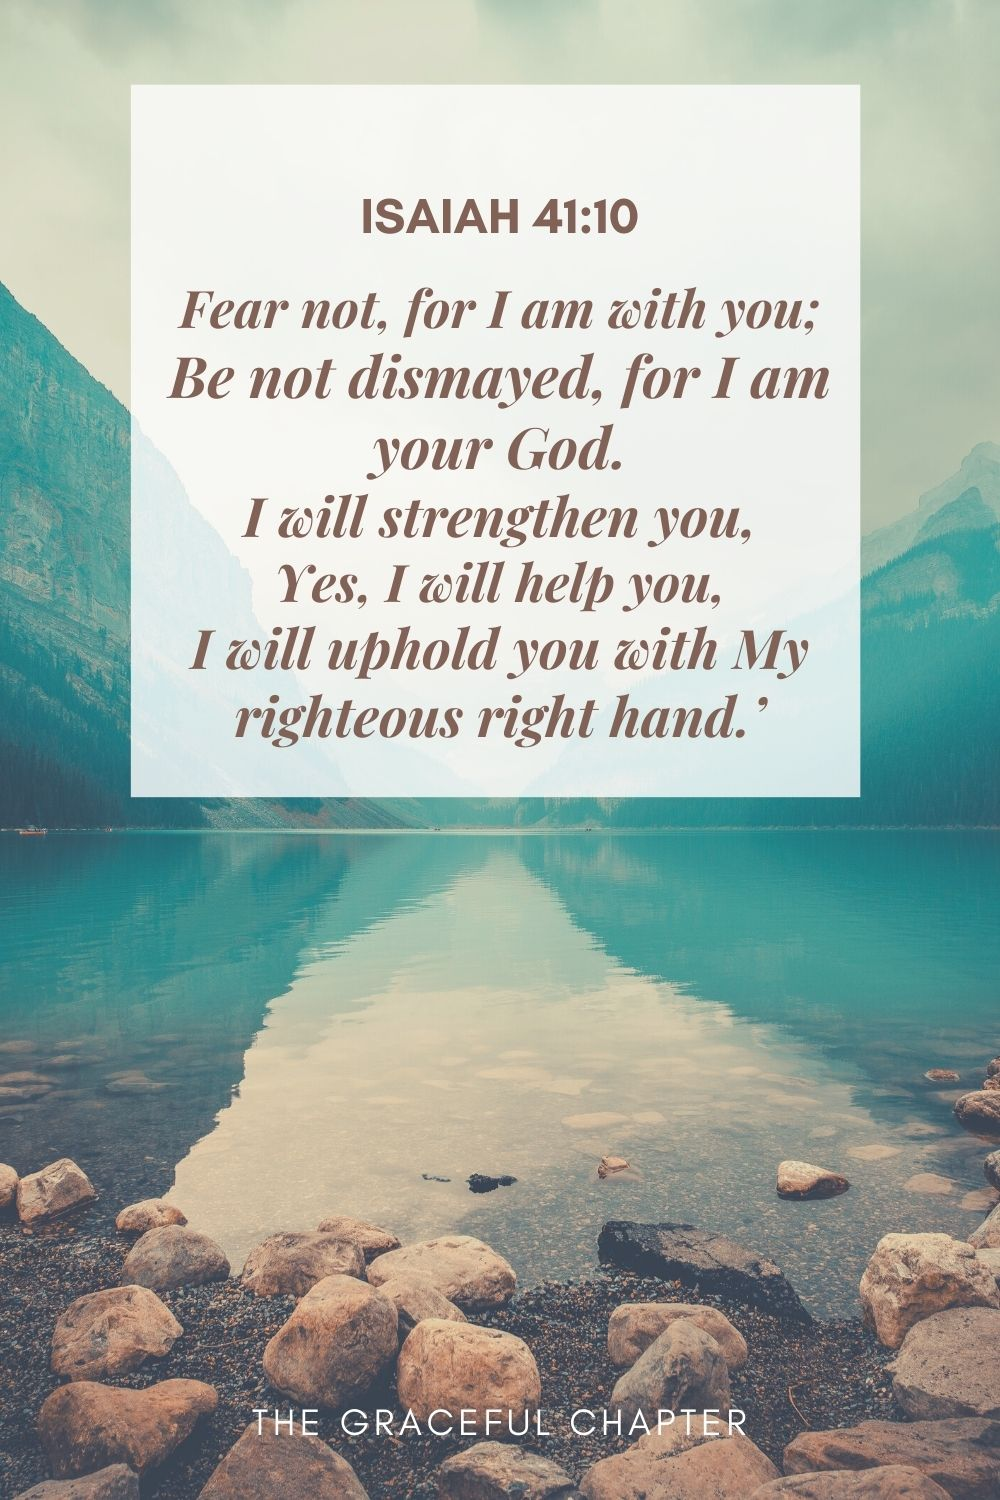 Fear not, for I am with you; Be not dismayed, for I am your God. I will strengthen you, Yes, I will help you, I will uphold you with My righteous right hand.' Isaiah 41:10